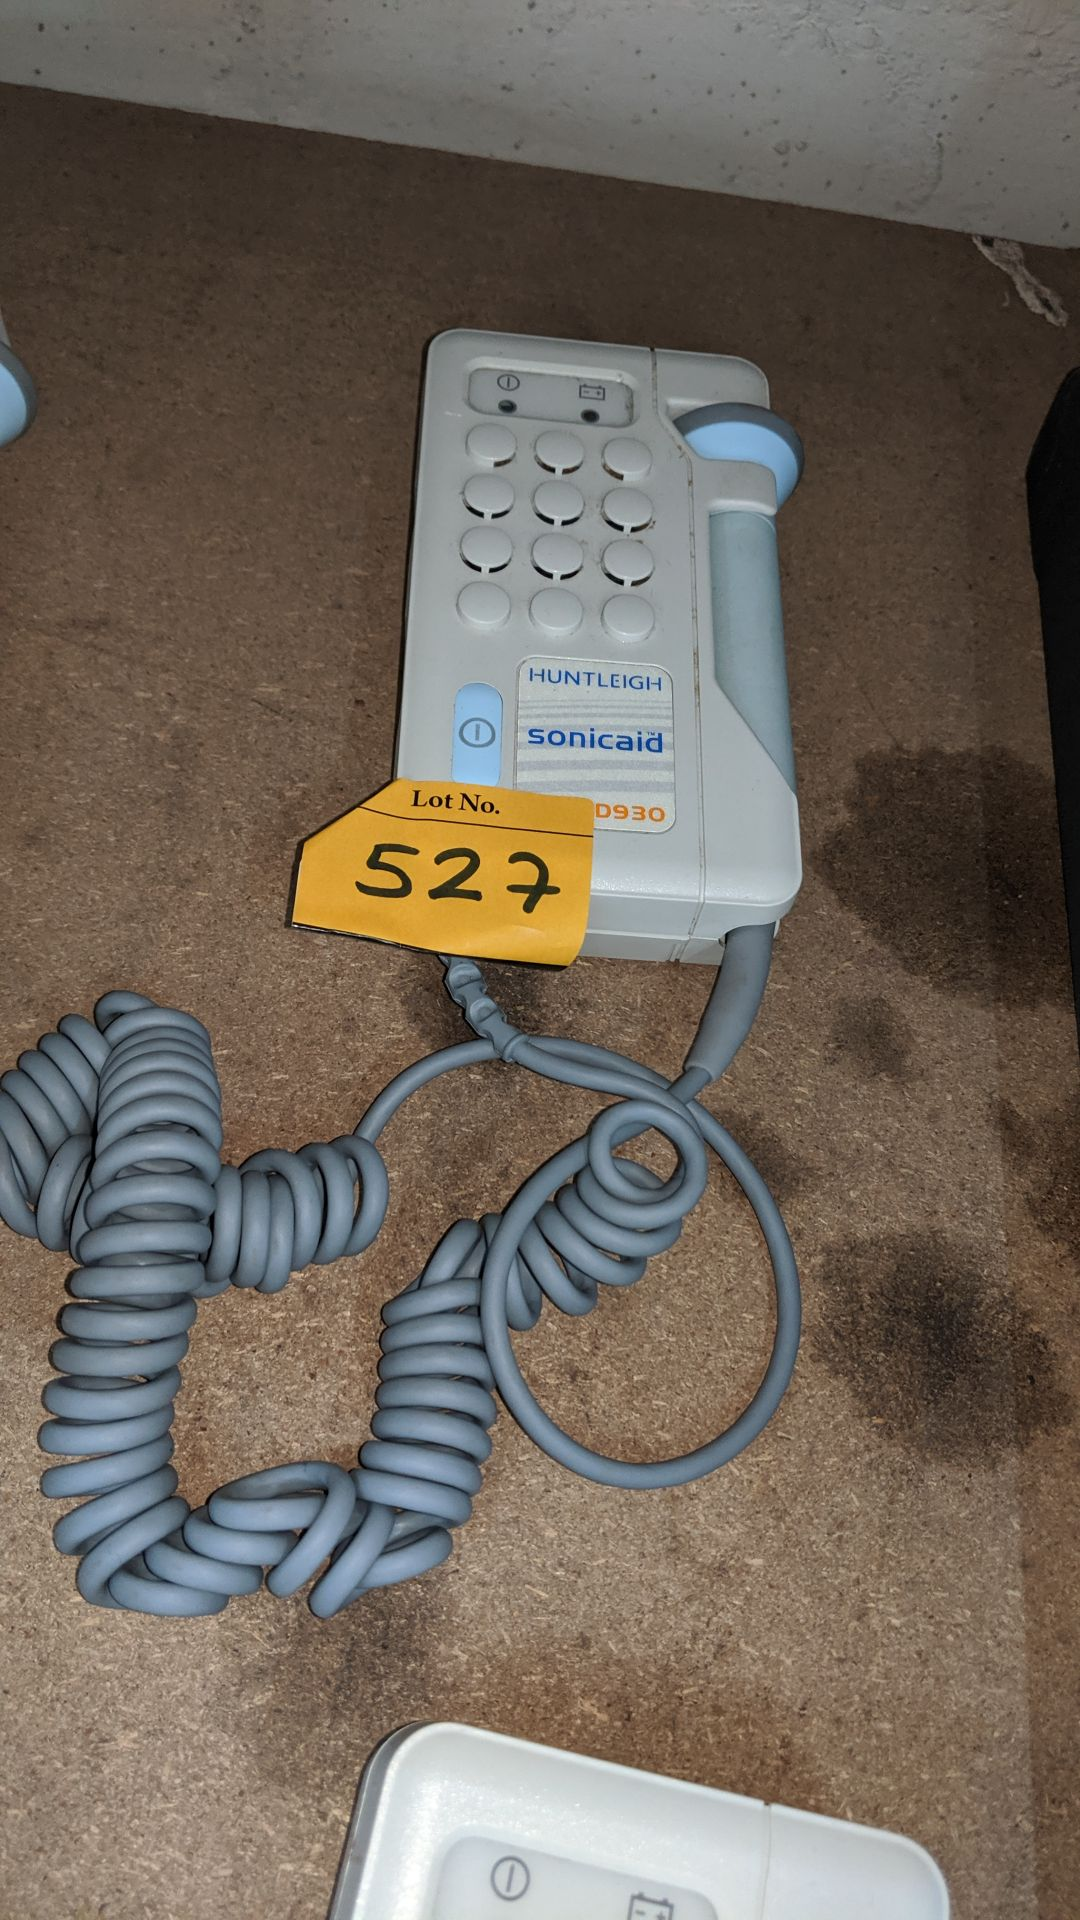 Lot 527 - Huntleigh Sonicaid model D930 Fetal Doppler . This is one of a large number of lots used/owned by